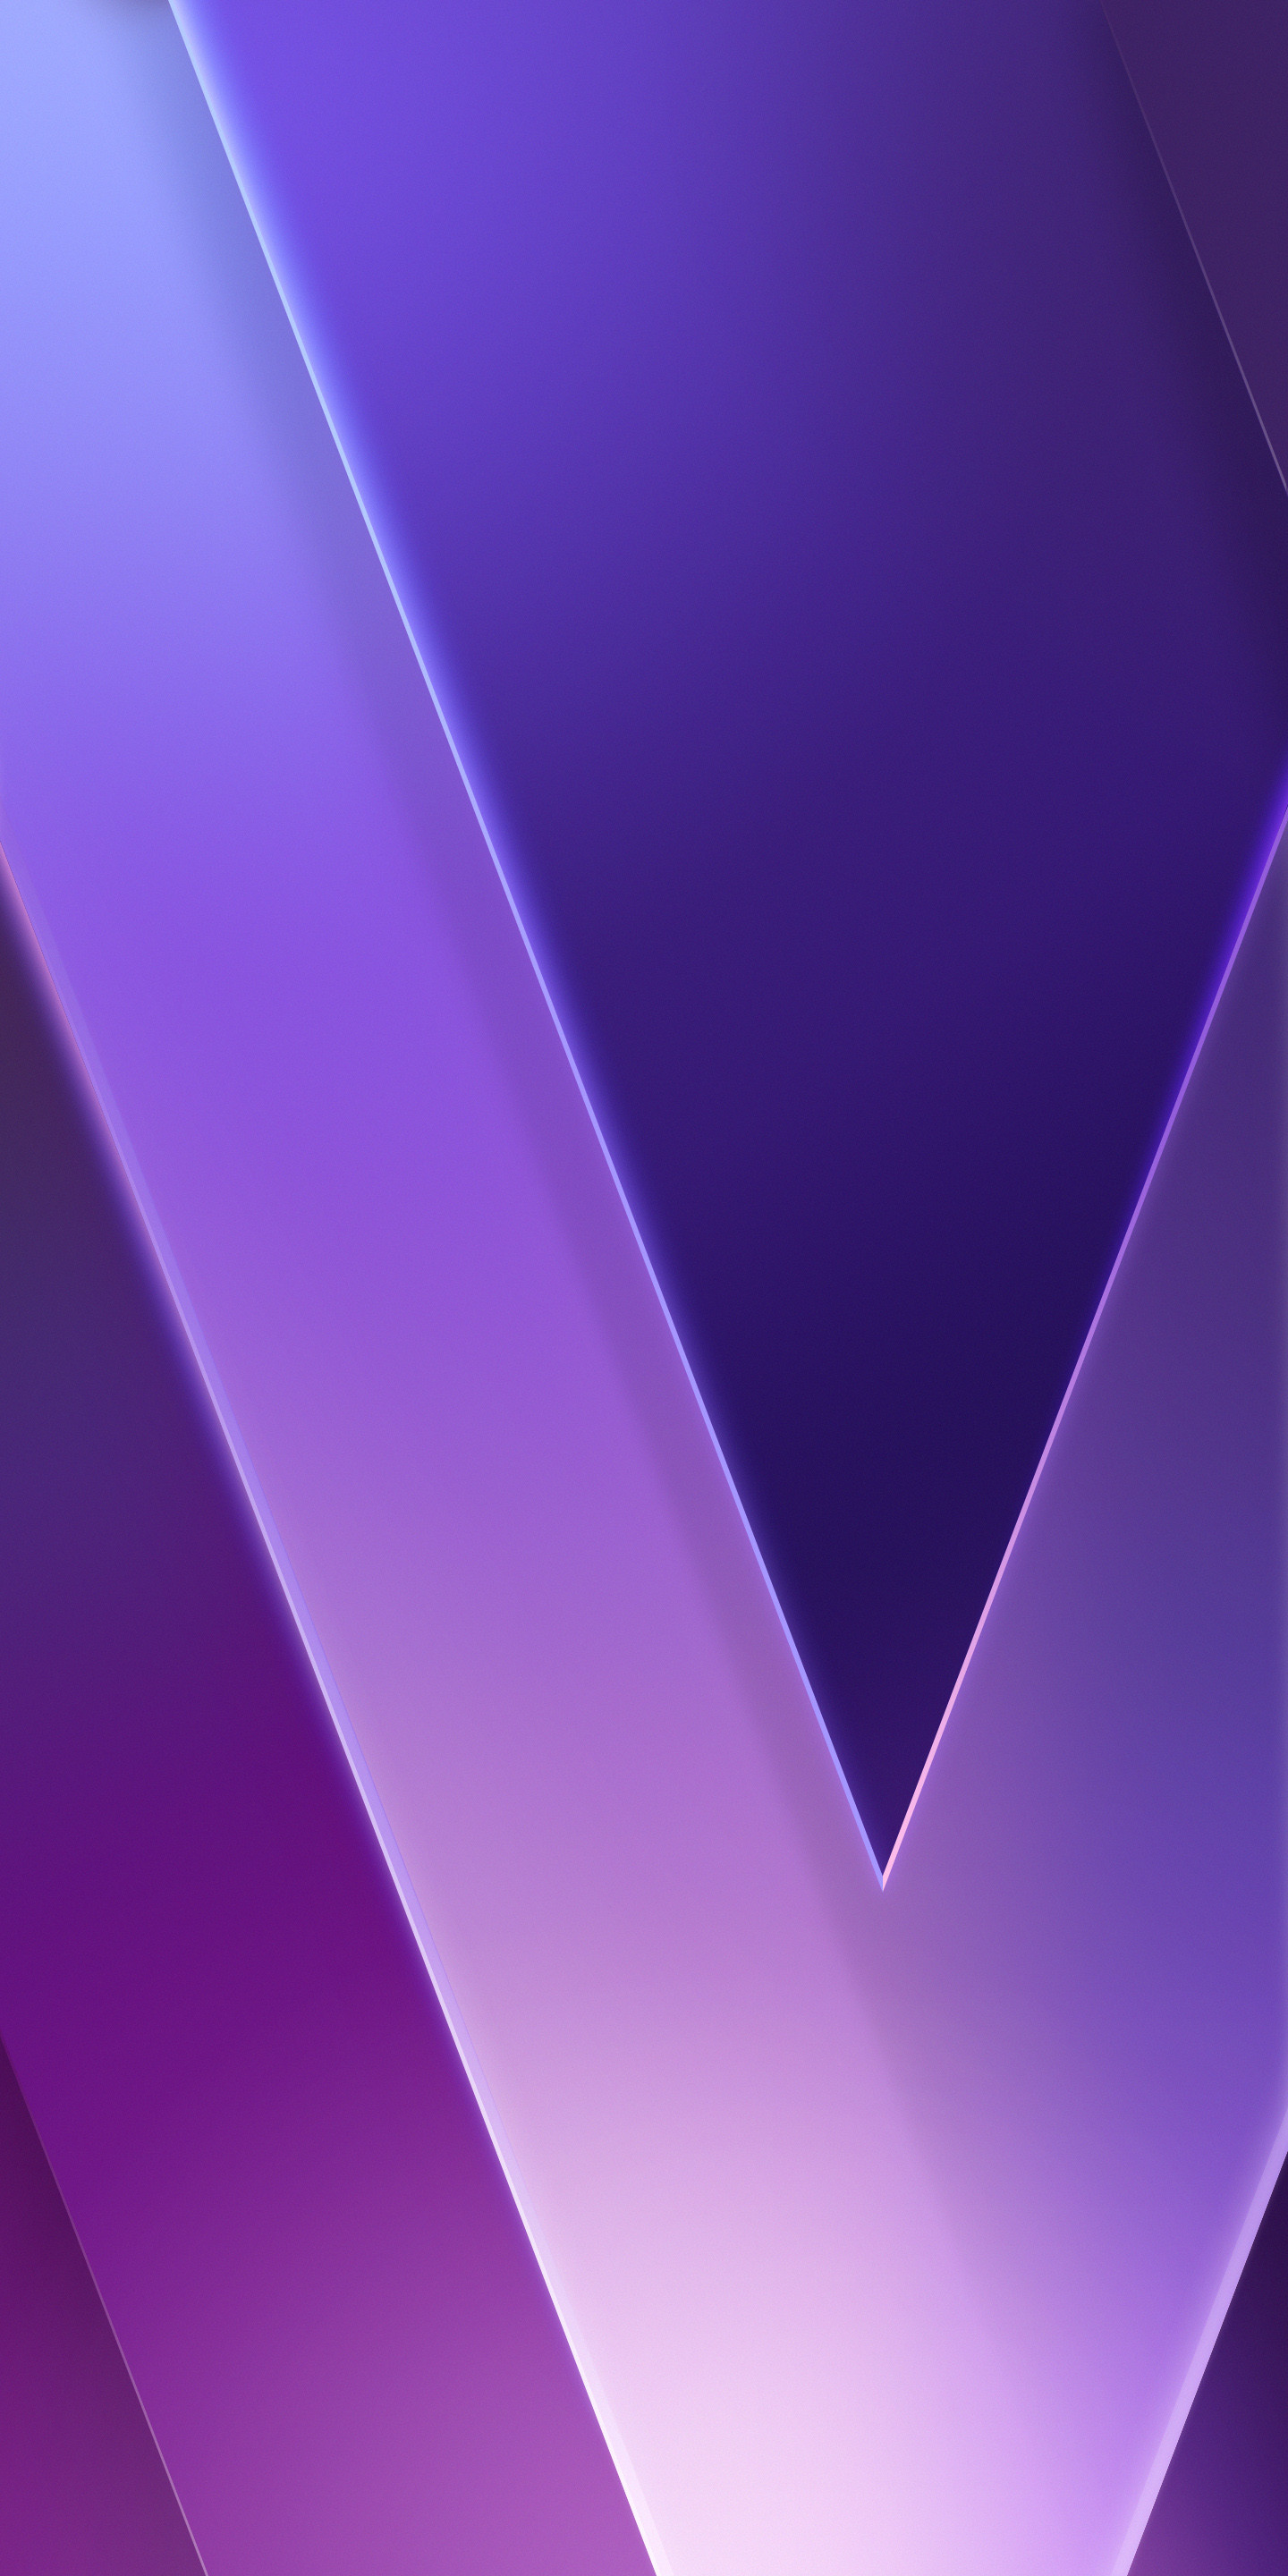 Res: 1440x2880, Below, you'll find all the LG V30 wallpapers in all their glory. Which V30  wallpaper is your favorite? Let us know in the comments!